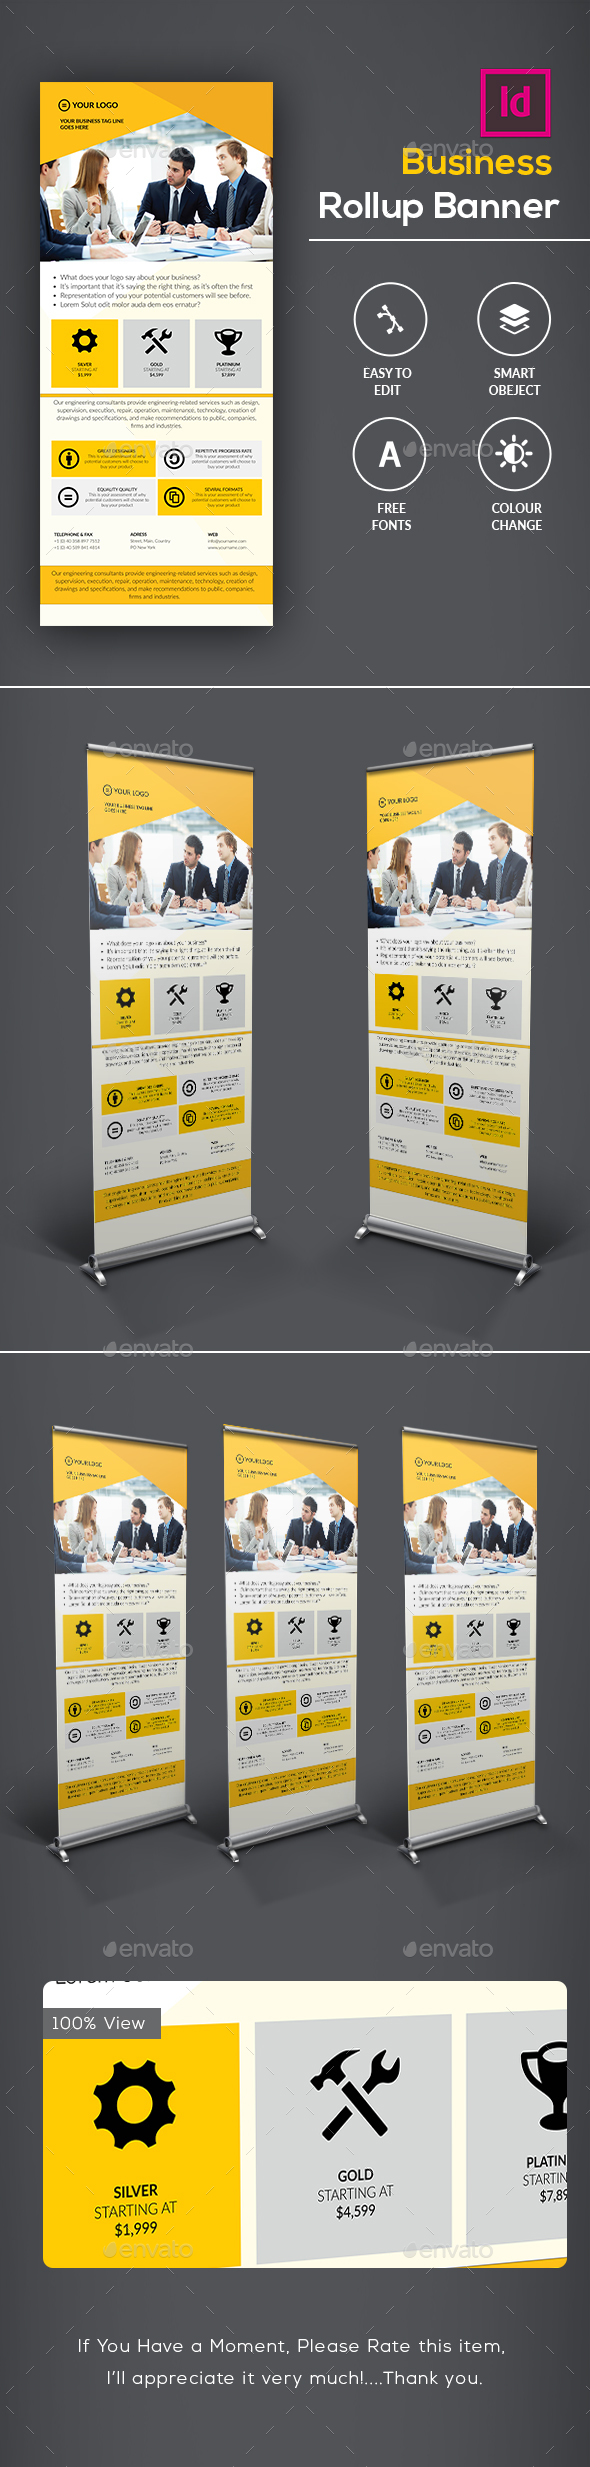 Corporate Business Rollup Banner - Signage Print Templates